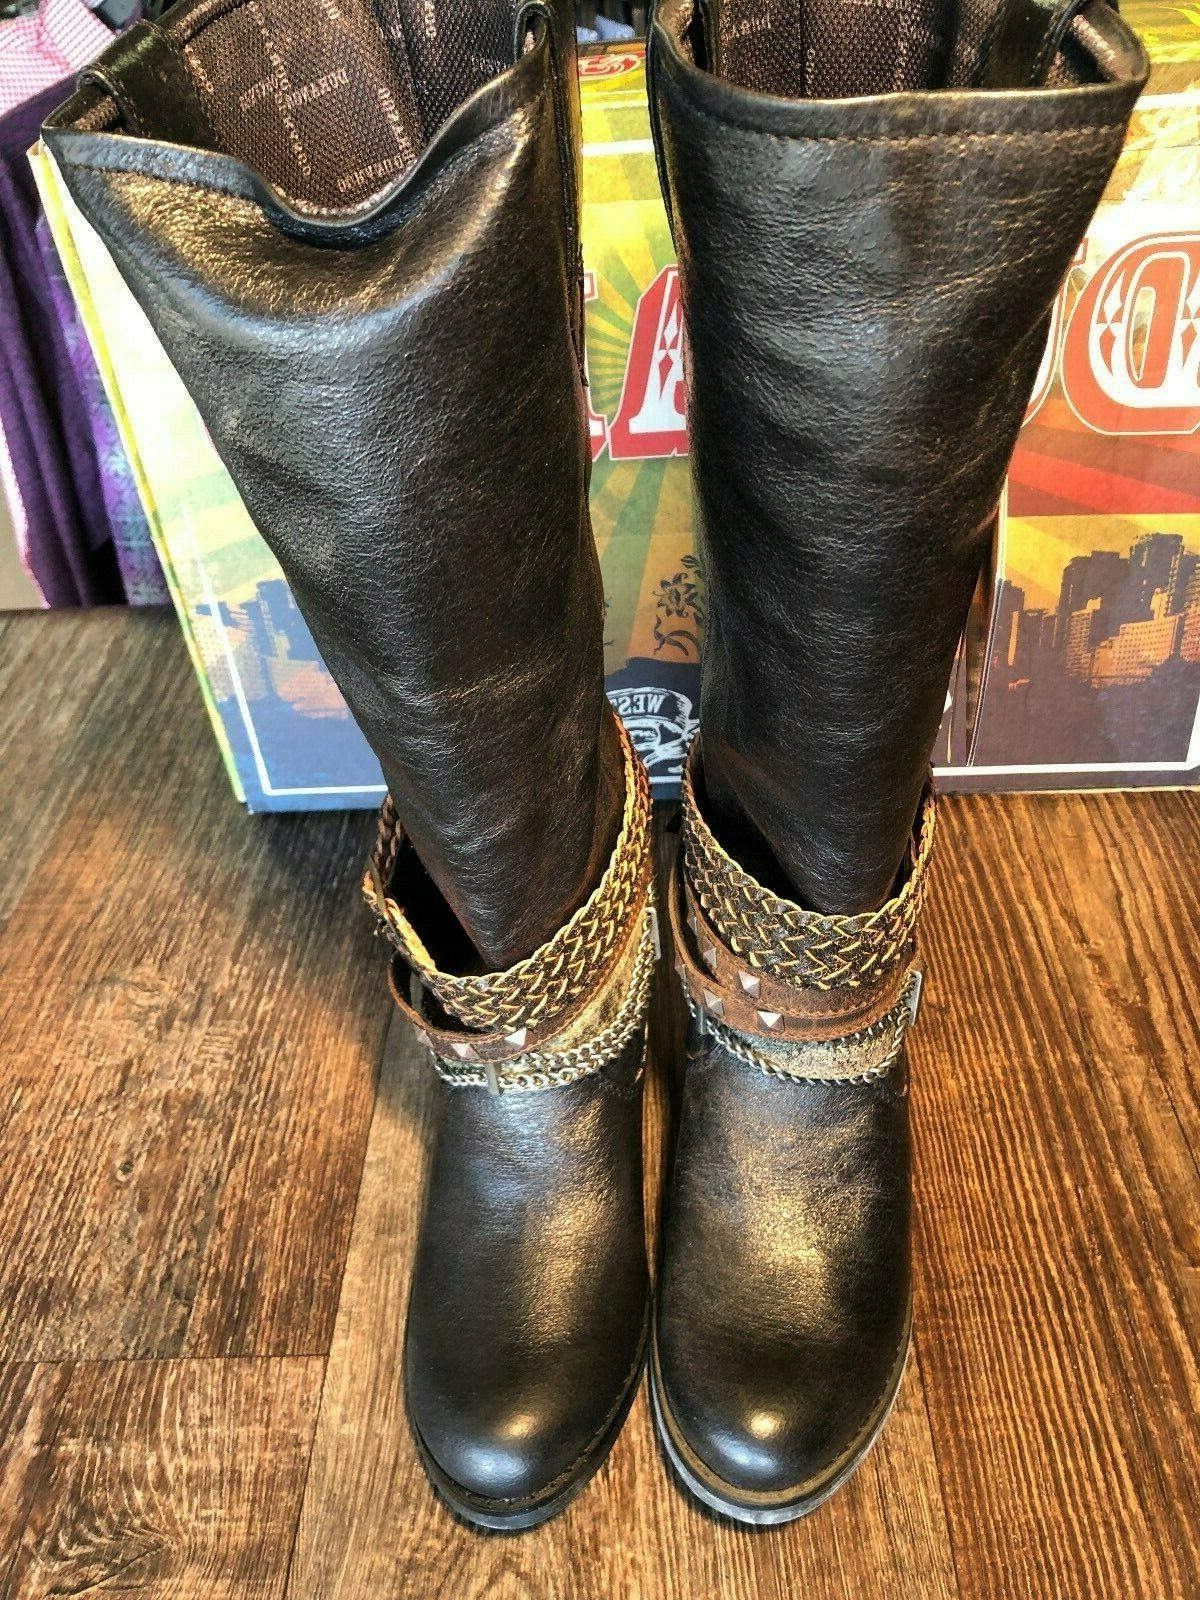 Women's fashion boot. Philly. Black with